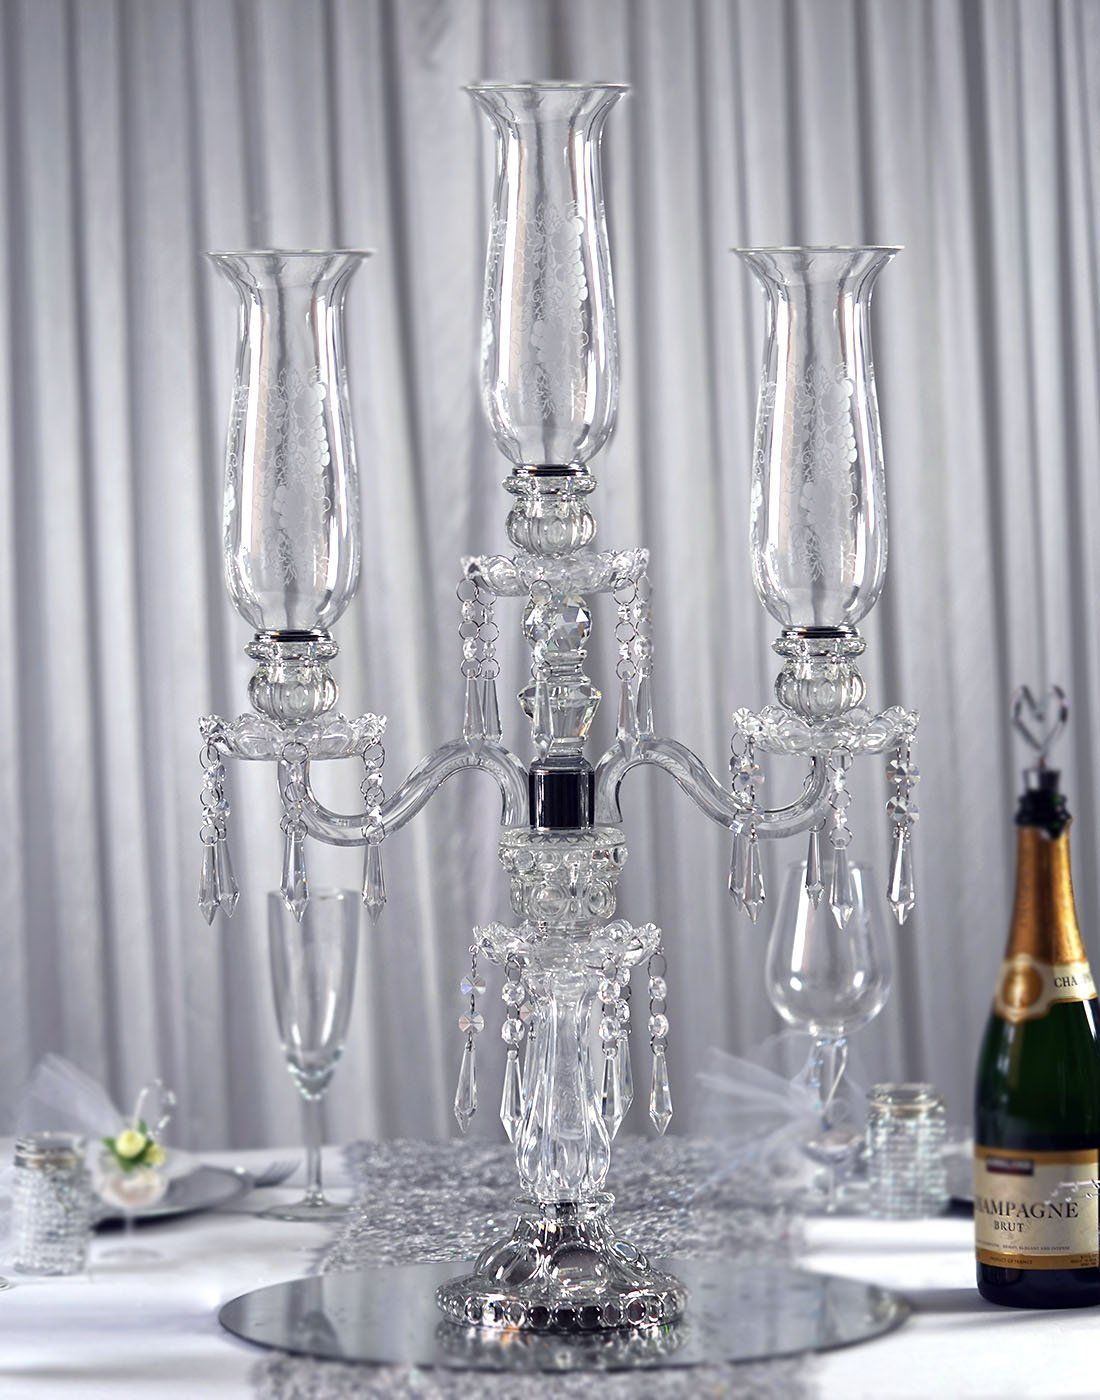 28 Tall Handcrafted 3 Arm Crystal Glass Tabletop Candelabra Baroque Taper Candleholder Centerpieces Diy Candle Holders Glass Glass Candle Holders Centerpiece